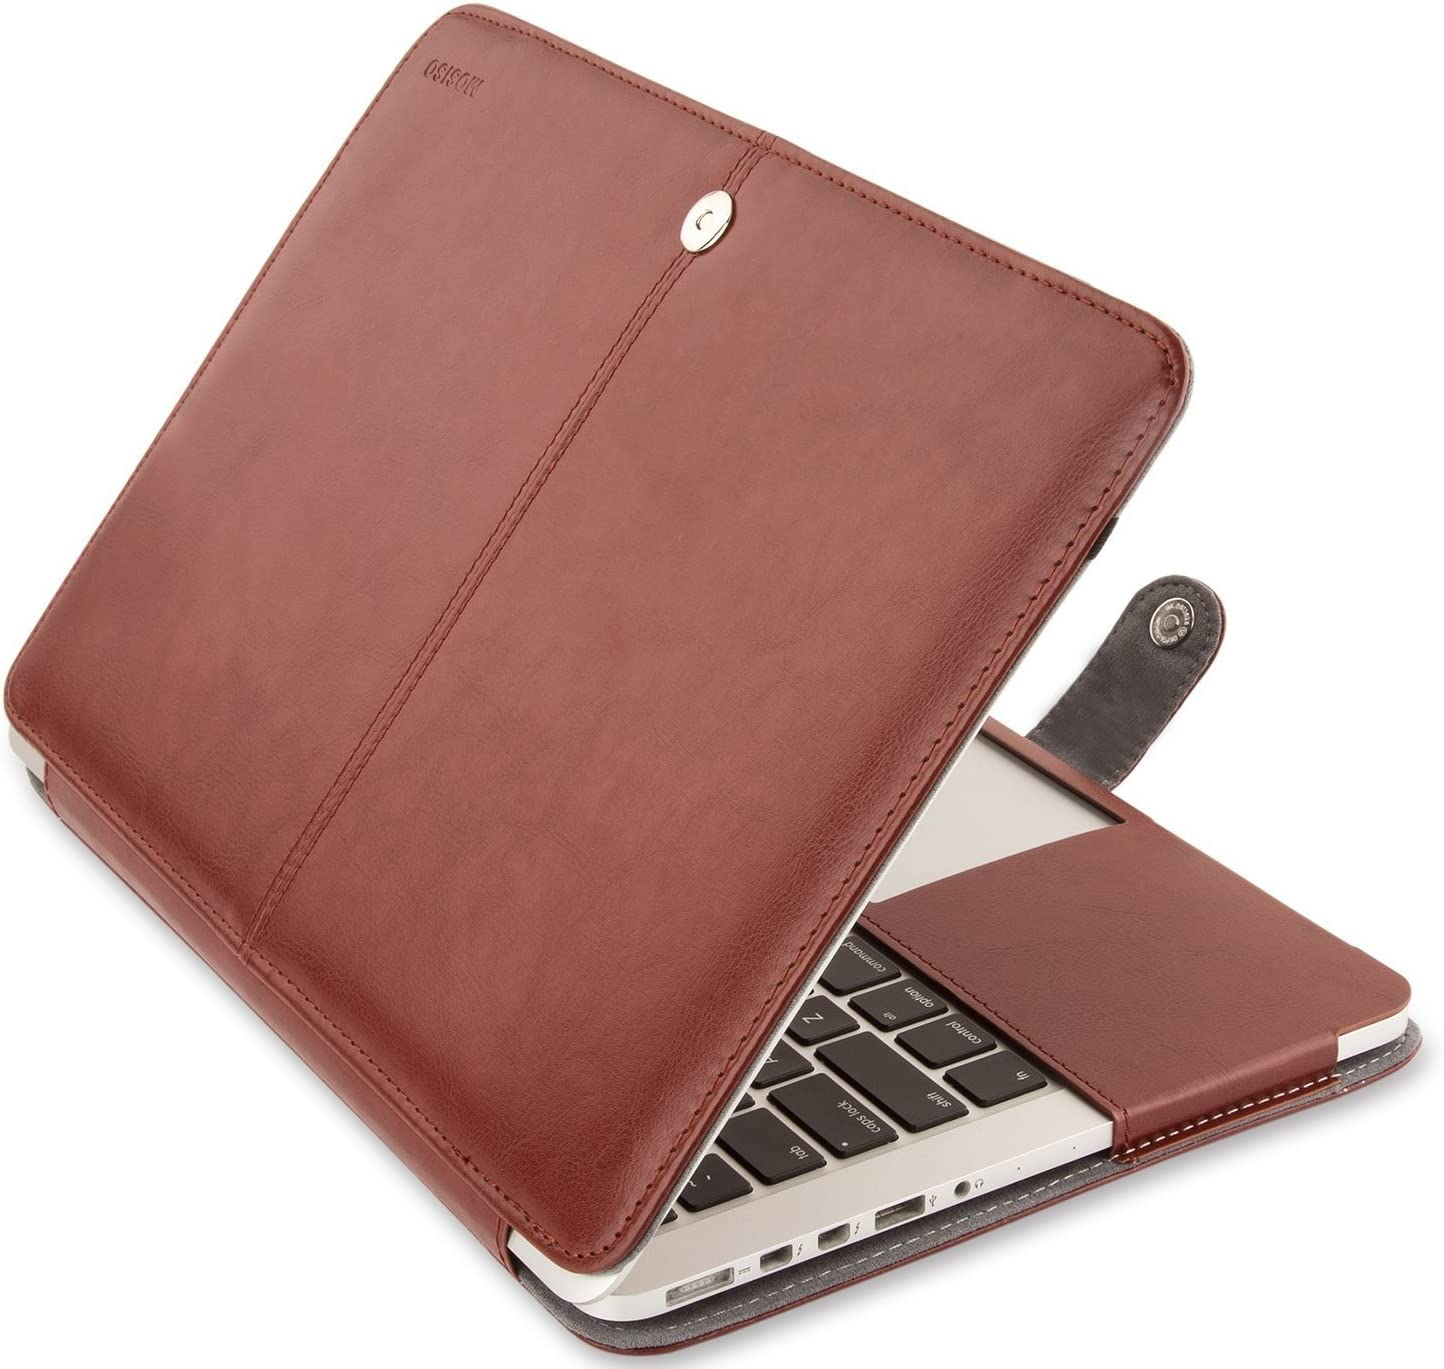 MOSISO MacBook Pro 13 inch Case, Premium PU Leather Book Folio Protective Stand Cover Sleeve Compatible with MacBook Pro 13 inch Retina (A1502/A1425, Version 2015/2014/2013/end 2012), Brown